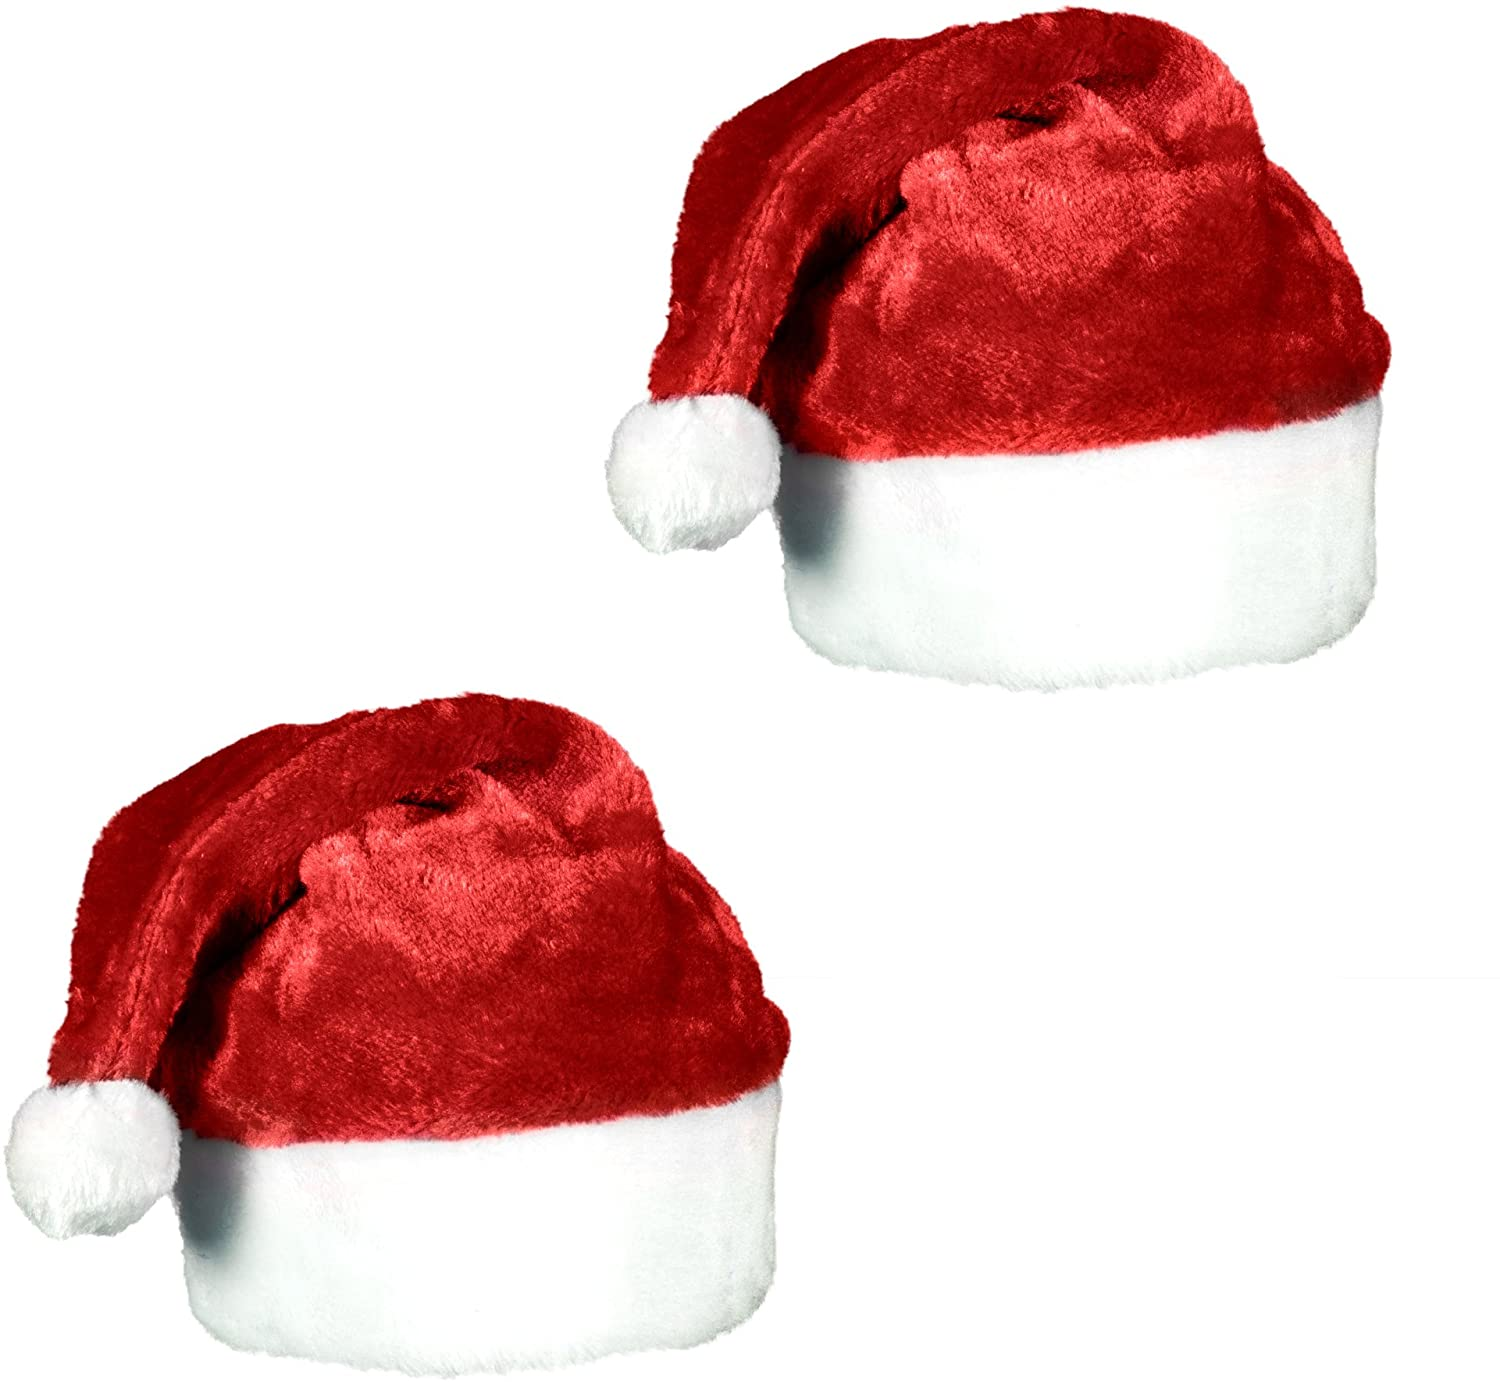 amazon com plush red velvet christmas santa hat with white cuffs 2 pack home kitchen plush red velvet christmas santa hat with white cuffs 2 pack